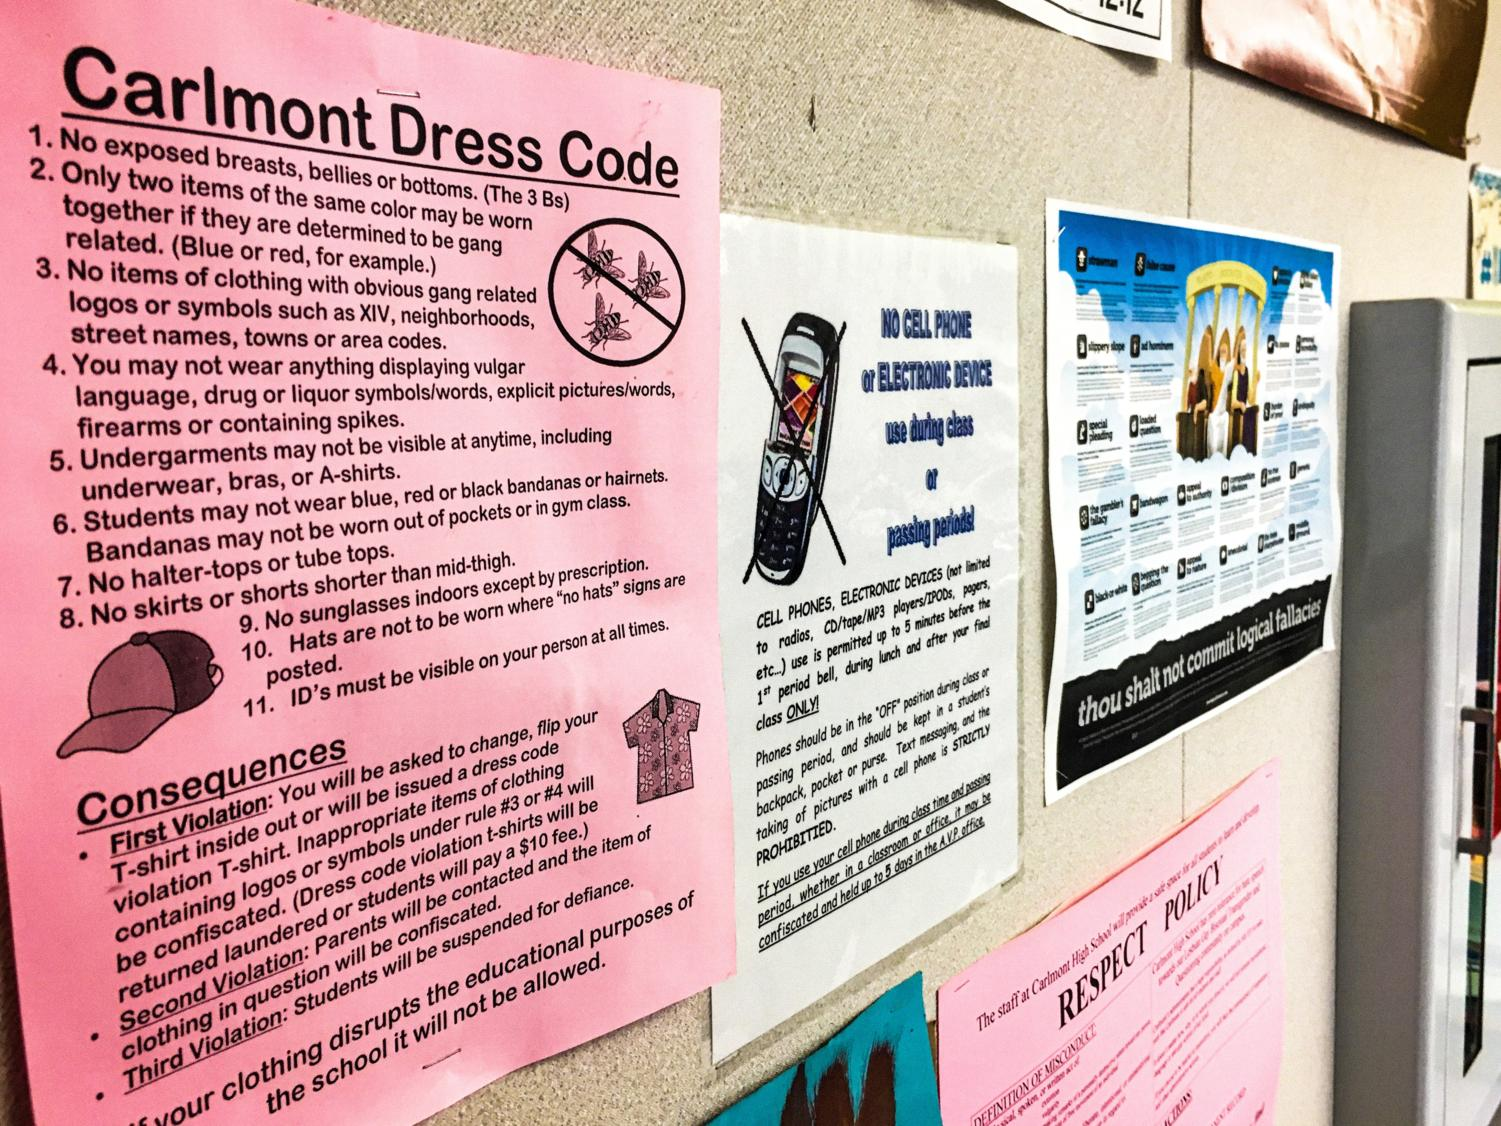 A print-out of the Carlmont High School dress code is displayed in Denise Steward's classroom.